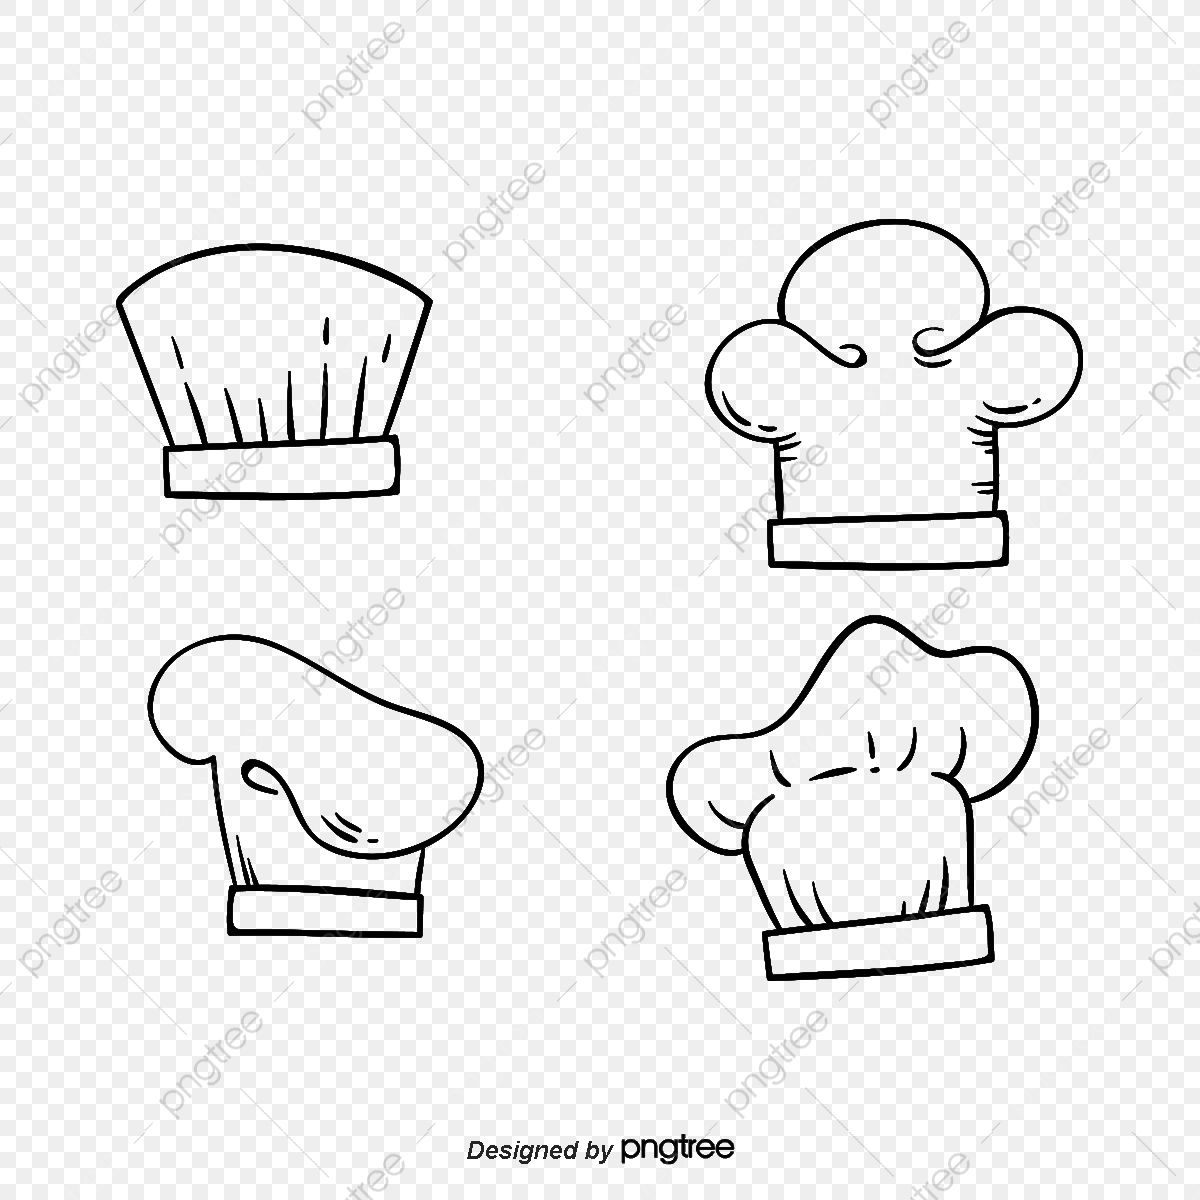 Chef Hat Pictures Painted Chef Hat Clipart Chef Hat Painted Chef S Hat Png Transparent Clipart Image And Psd File For Free Download Hat Png Chefs Hat Clip Art